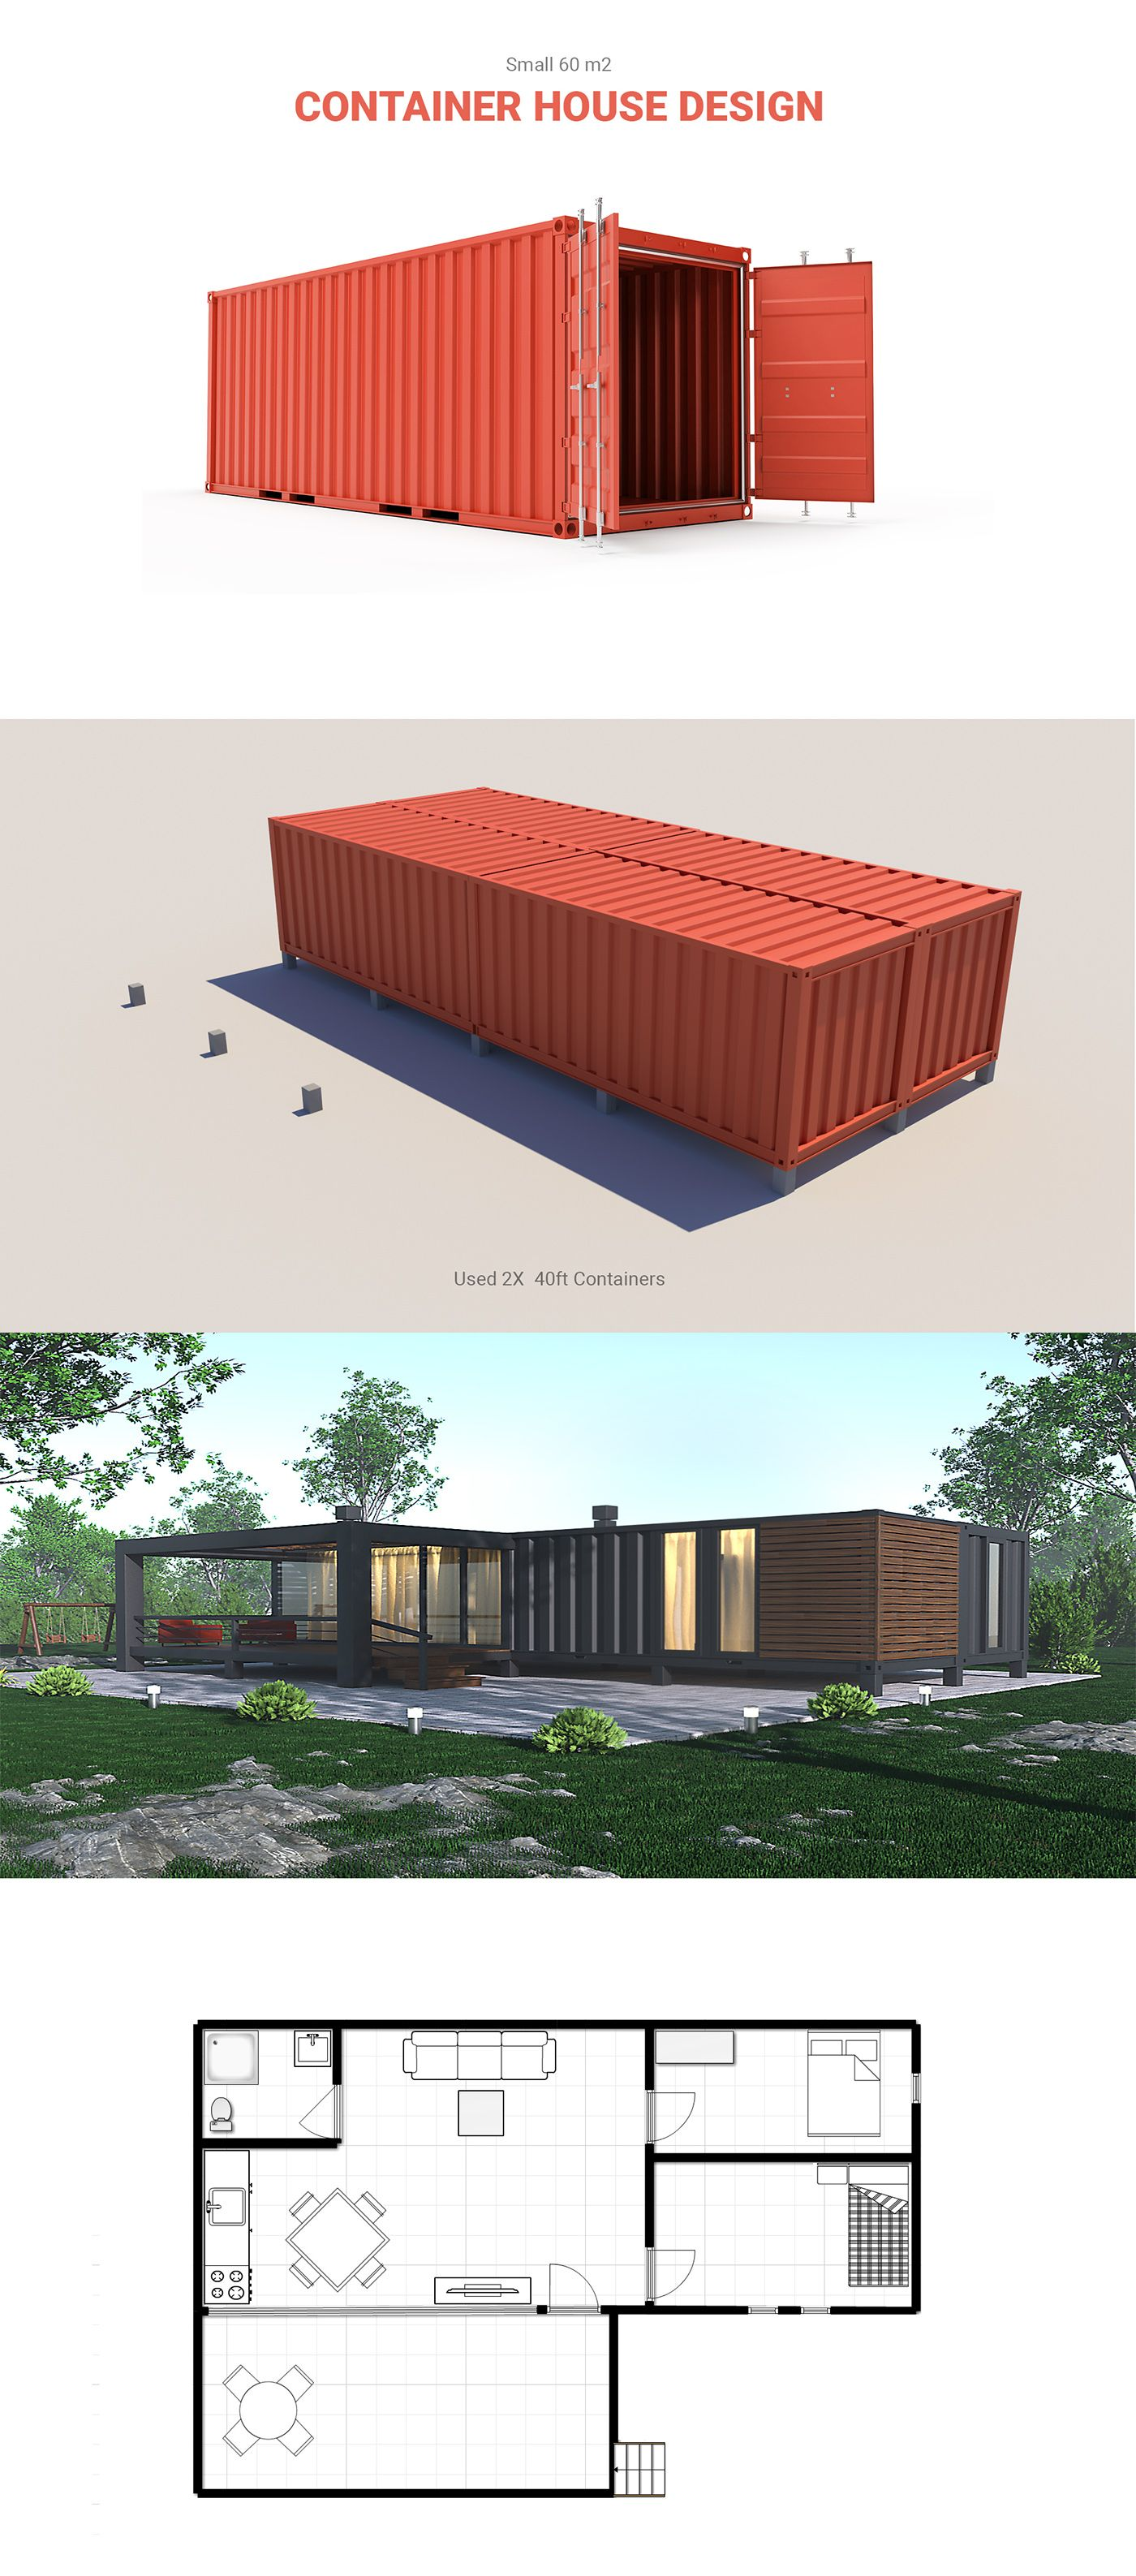 Container house container homes in 2018 pinterest maison conteneur maison and plan maison - Maison container ...